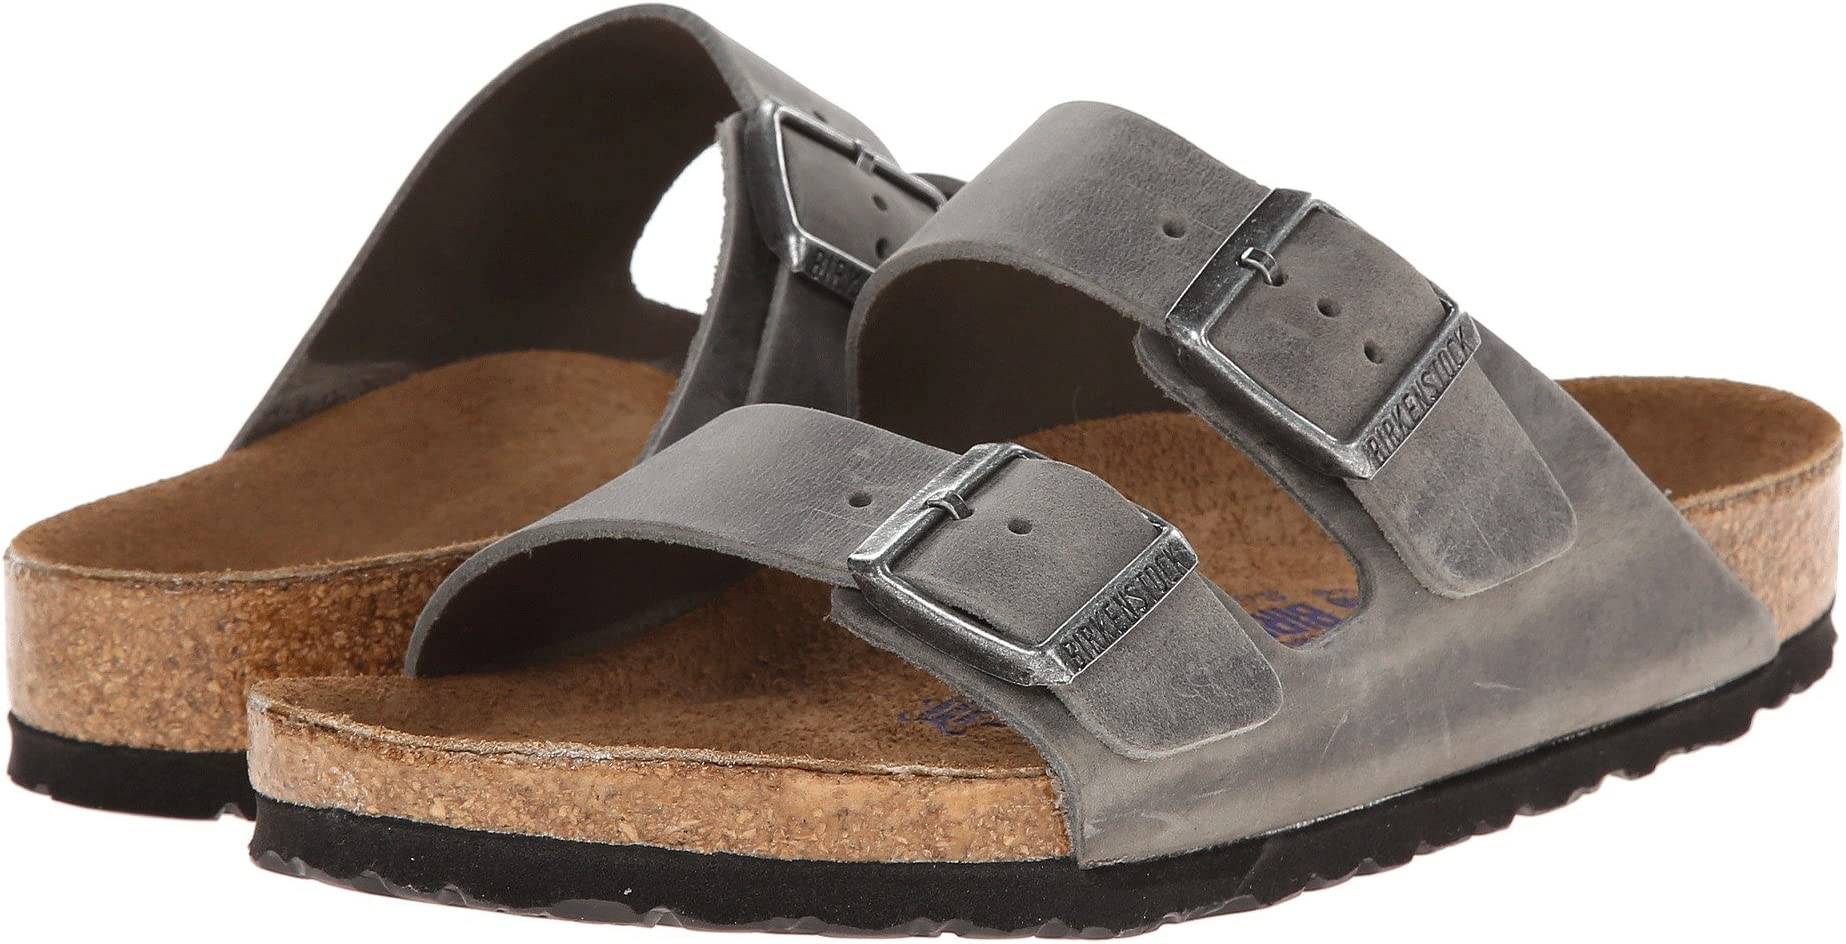 Birkenstock Arizona Leather (Unisex) BOTH